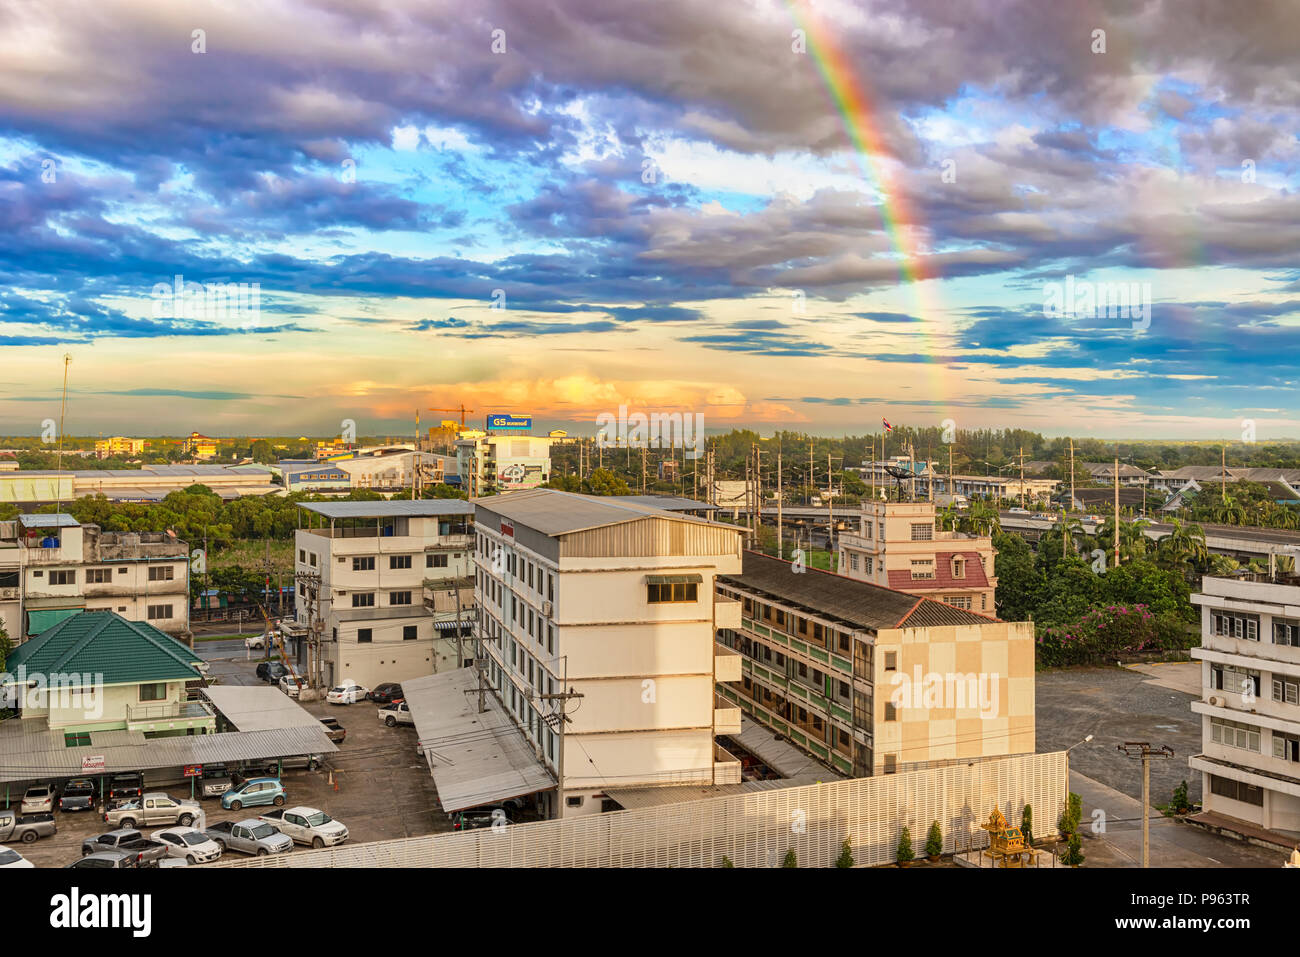 Chachoengsao, Thailand - Nov 22, 2017: Rainbow over the town of Chachoengsao, in south-central Thailand, east of Bangkok. It's an agricultural hub cen - Stock Image